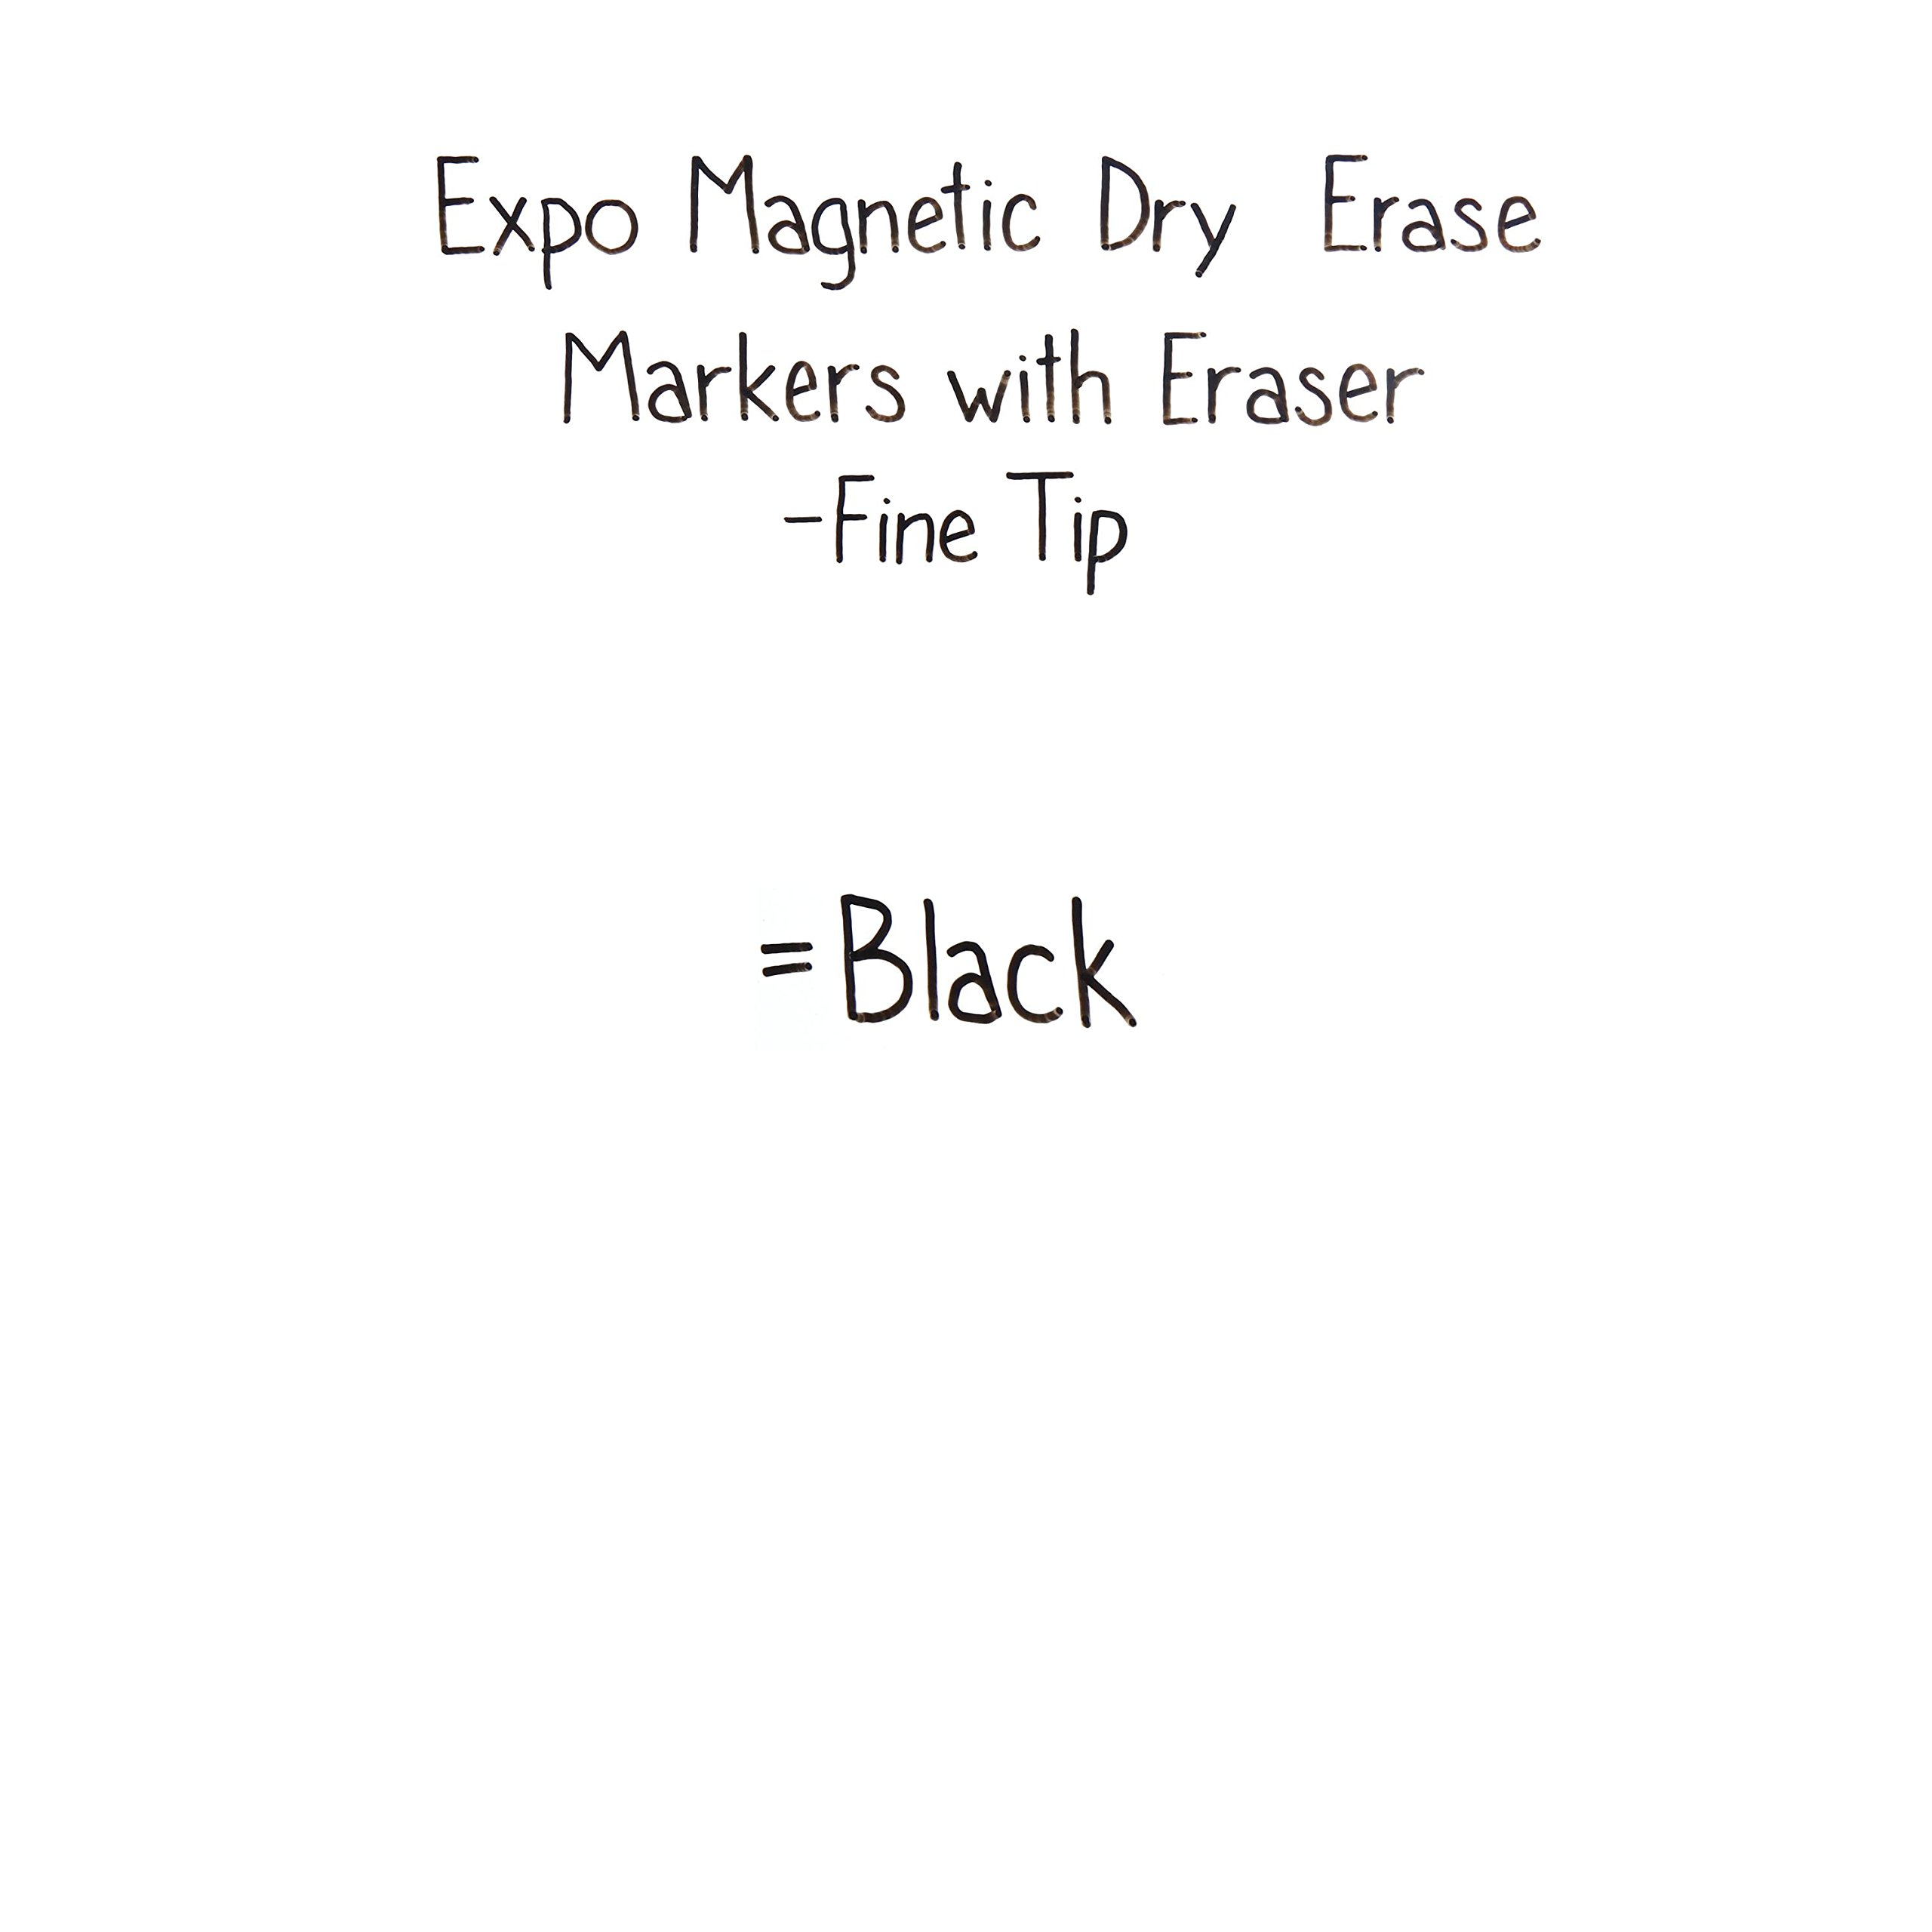 EXPO Magnetic Dry Erase Marker with Eraser, Fine Tip, Black, 12-Count by Expo (Image #5)